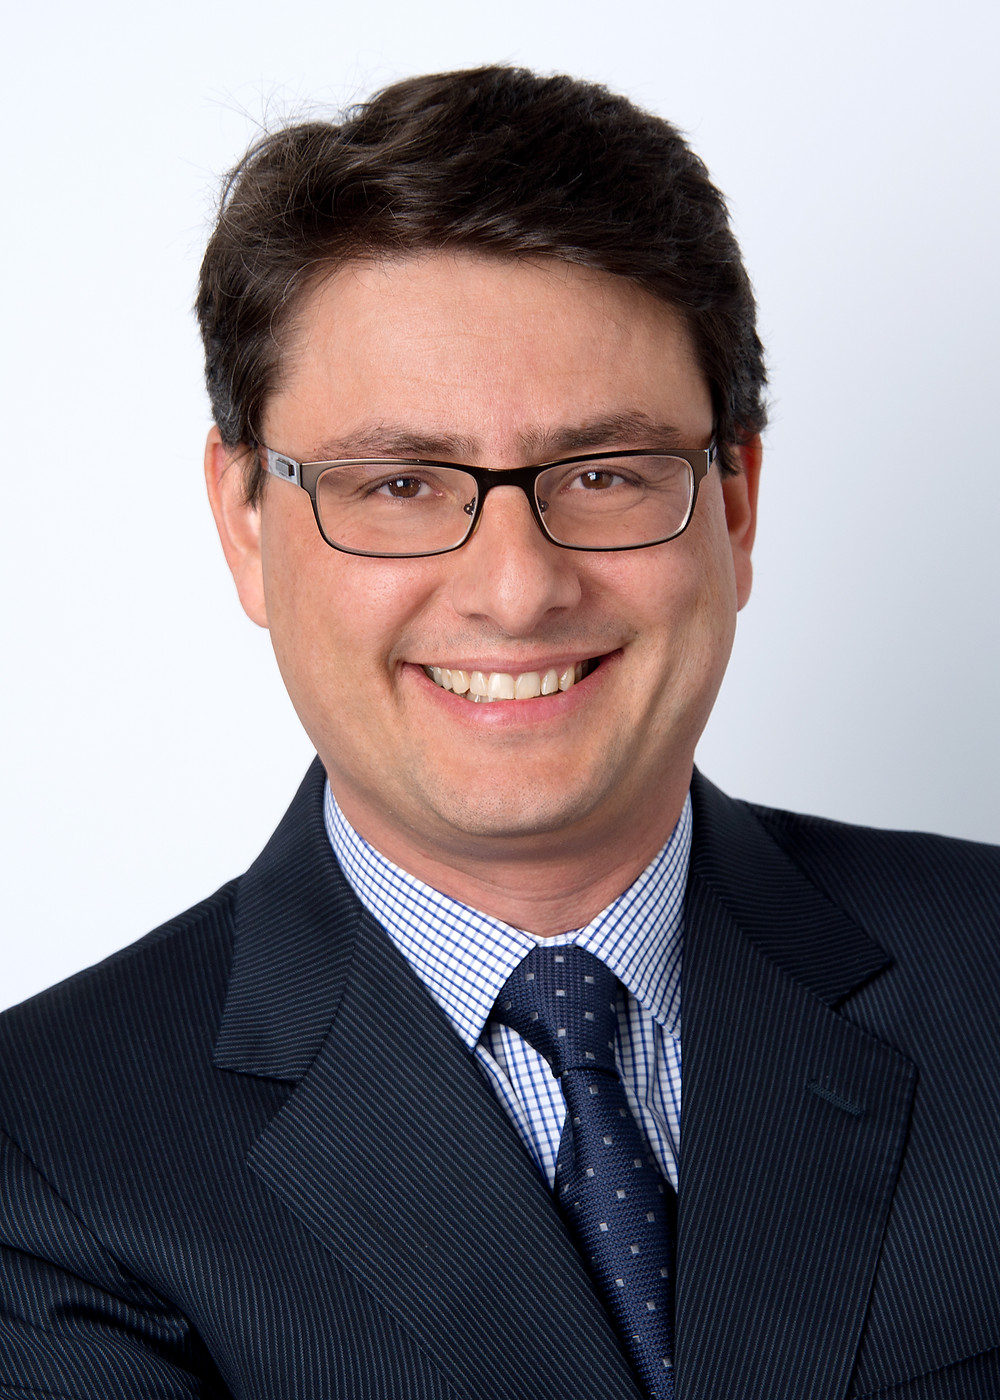 Patrick Zammit, president Europe and global analytics and IoT solutions at Tech Data